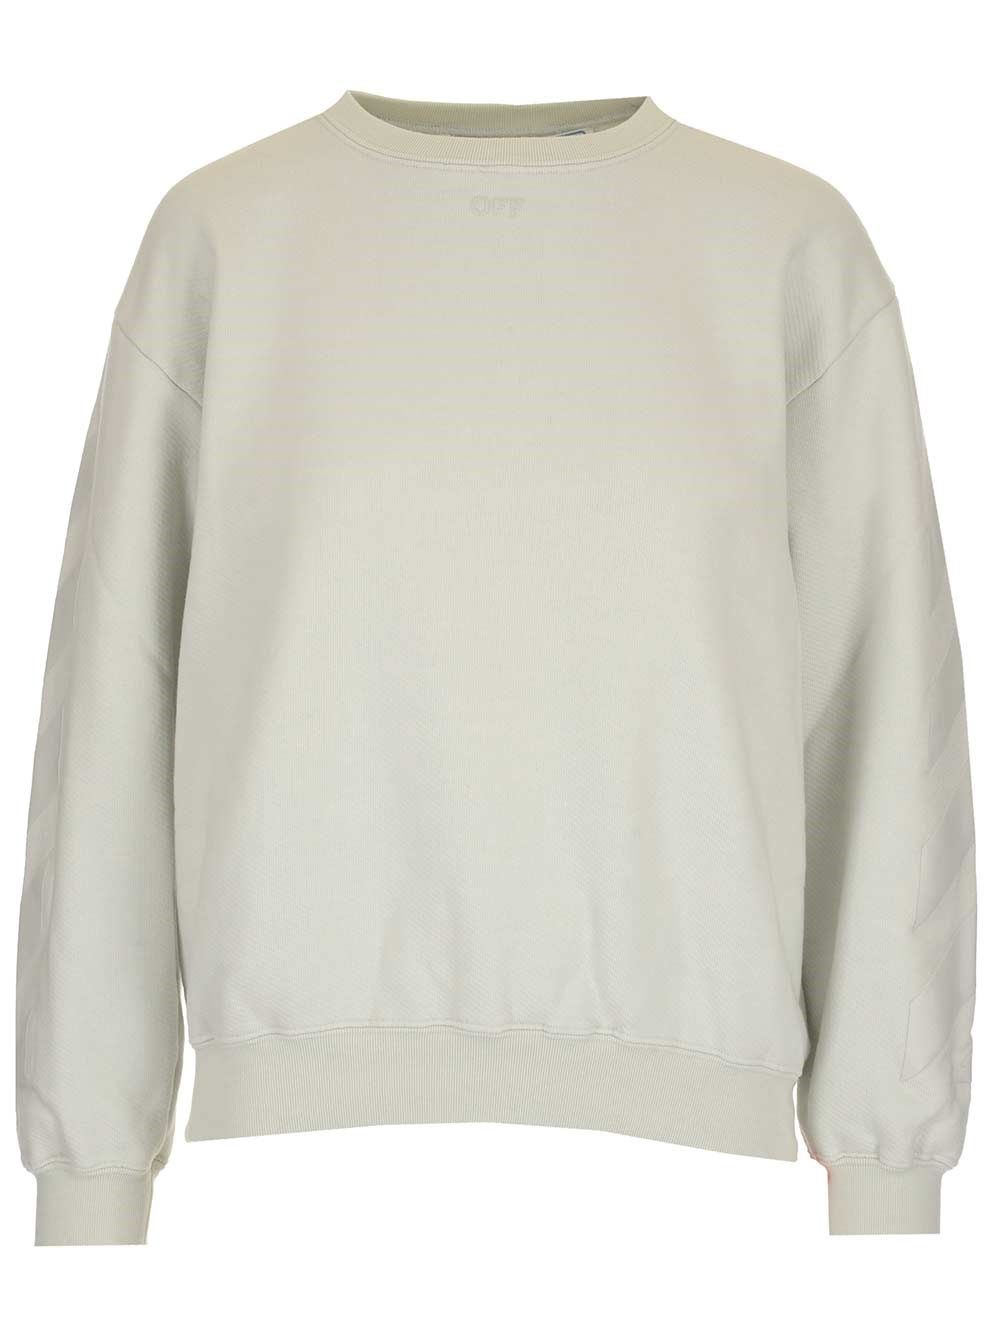 Off-White OFF-WHITE WOMEN'S OWBA046S21JER0020101 WHITE OTHER MATERIALS SWEATSHIRT